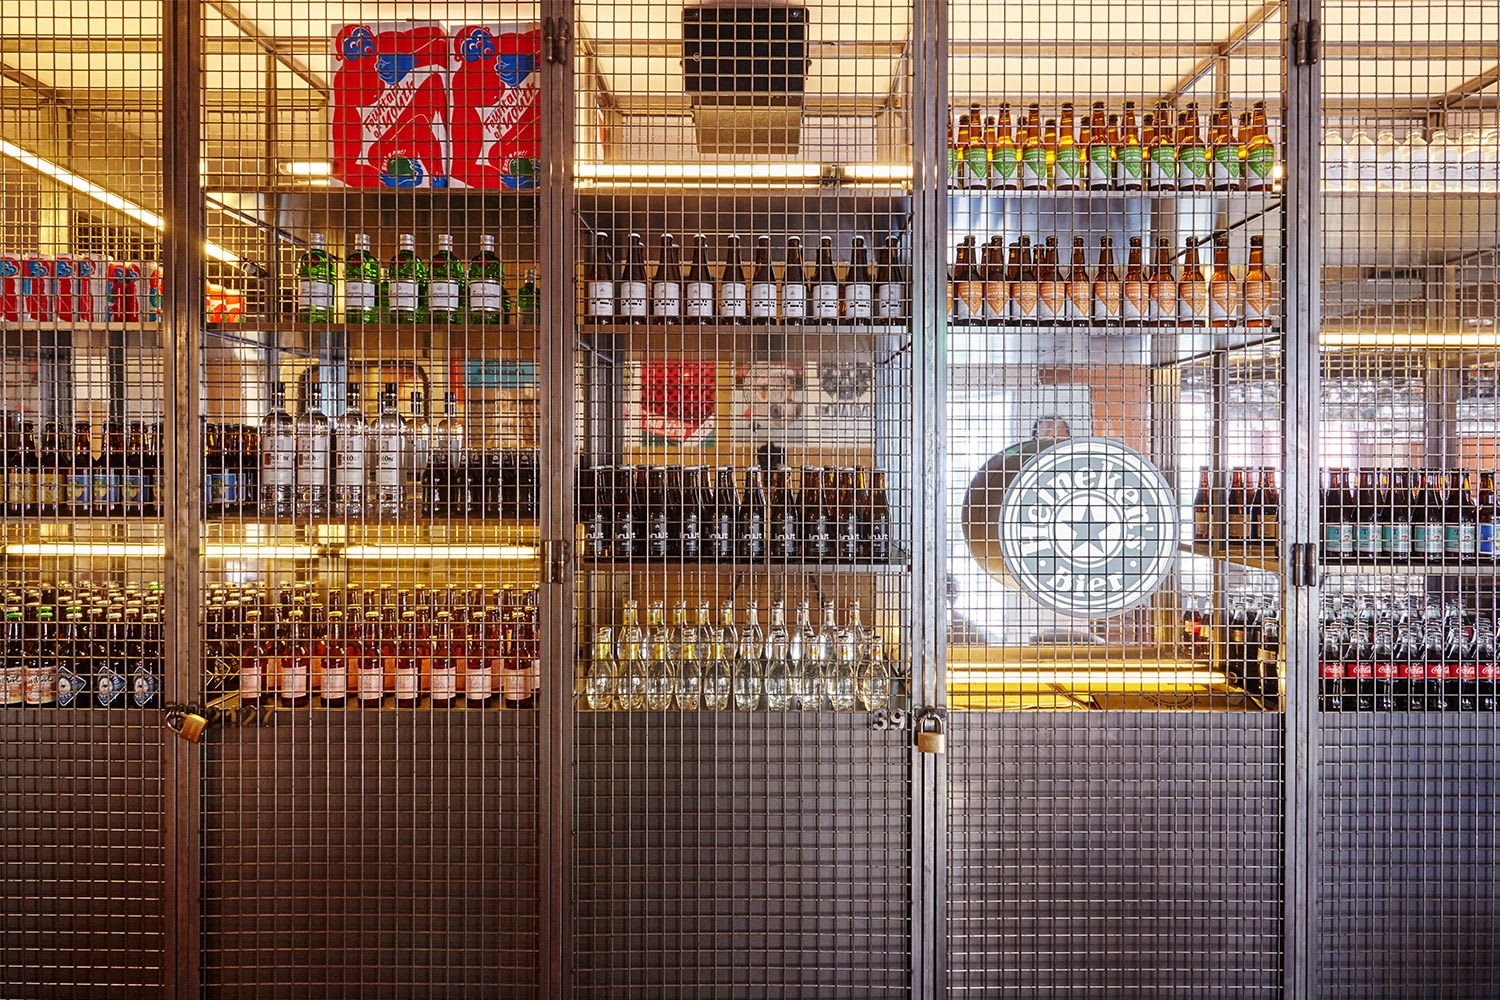 Interior Design by Studio Modijefsky seen at Bar Basquiat, Amsterdam - Interior Design